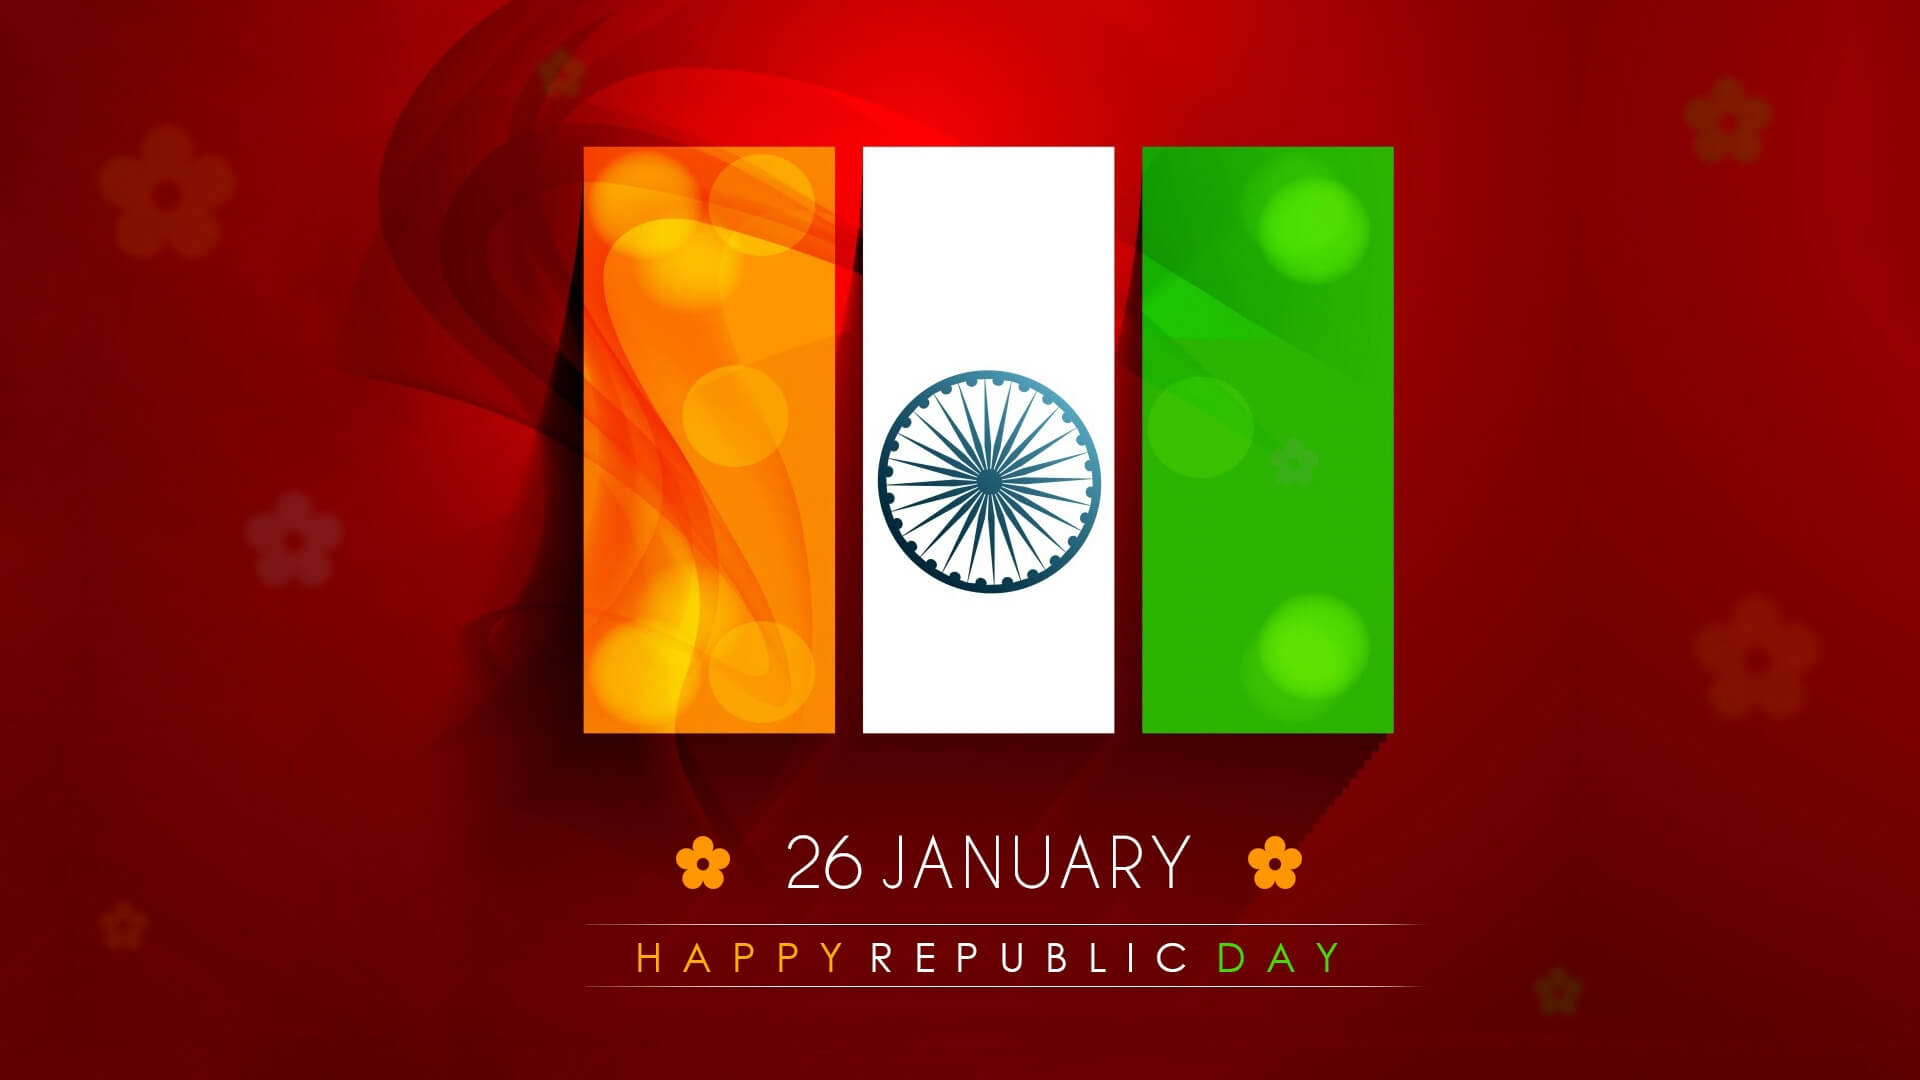 Happy Republic Day HD Wallpapers